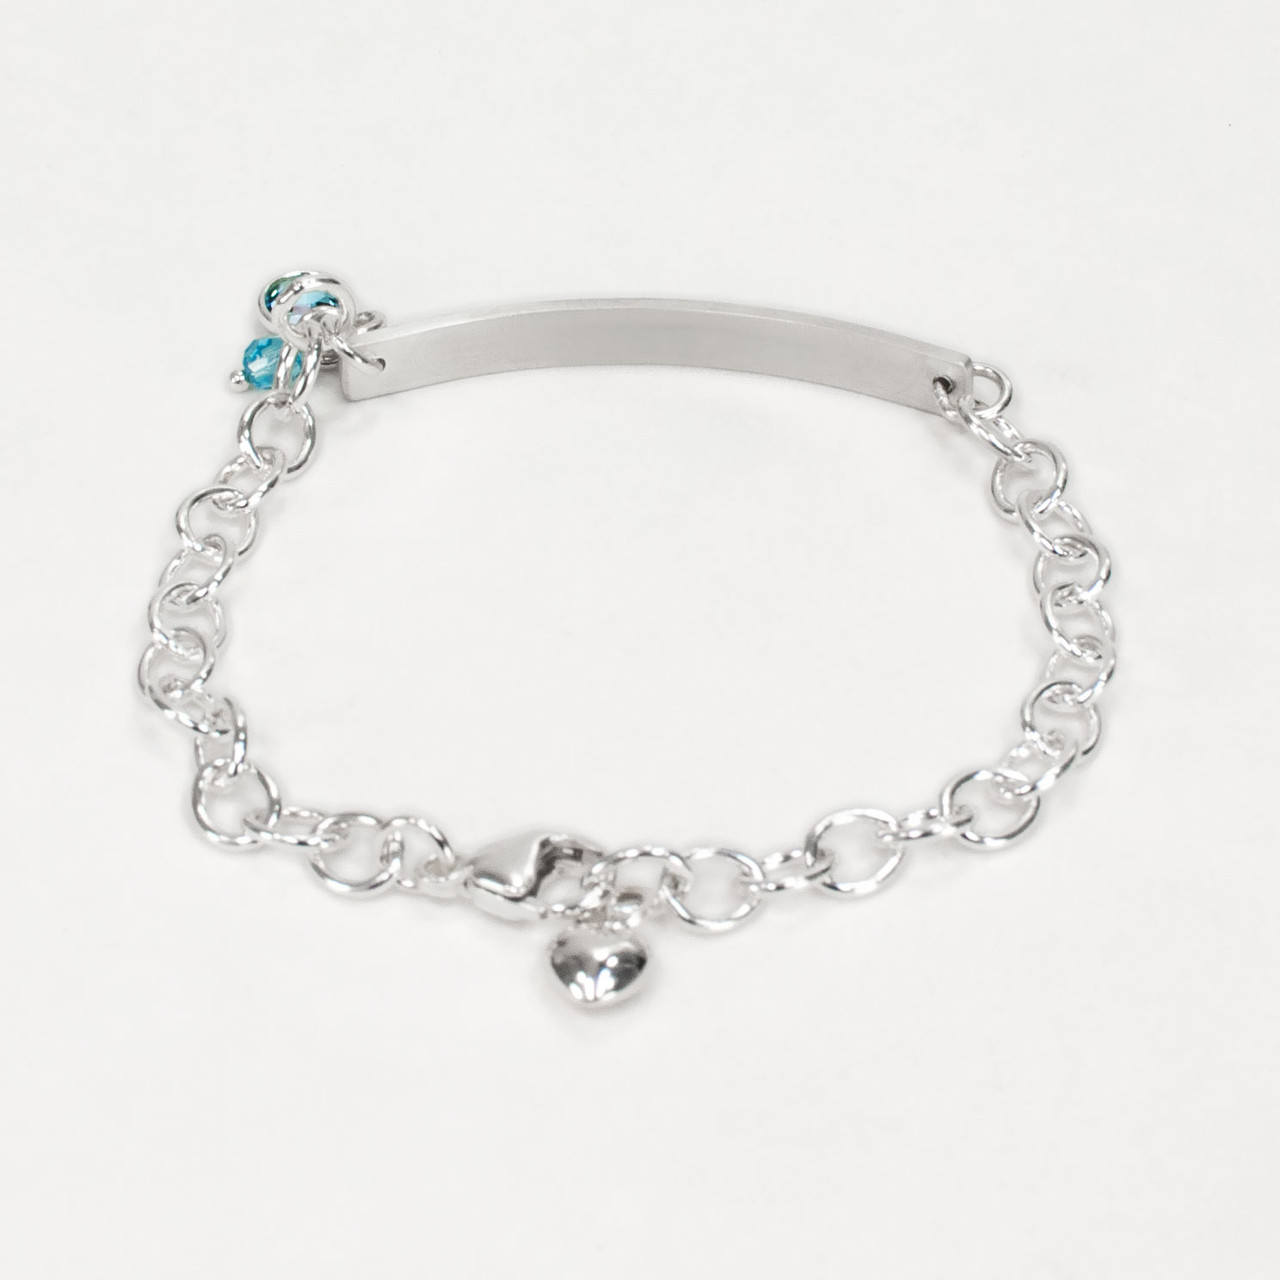 Hand stamped ID Bracelet made from sterling silver, shown from the back, with birthstone on white